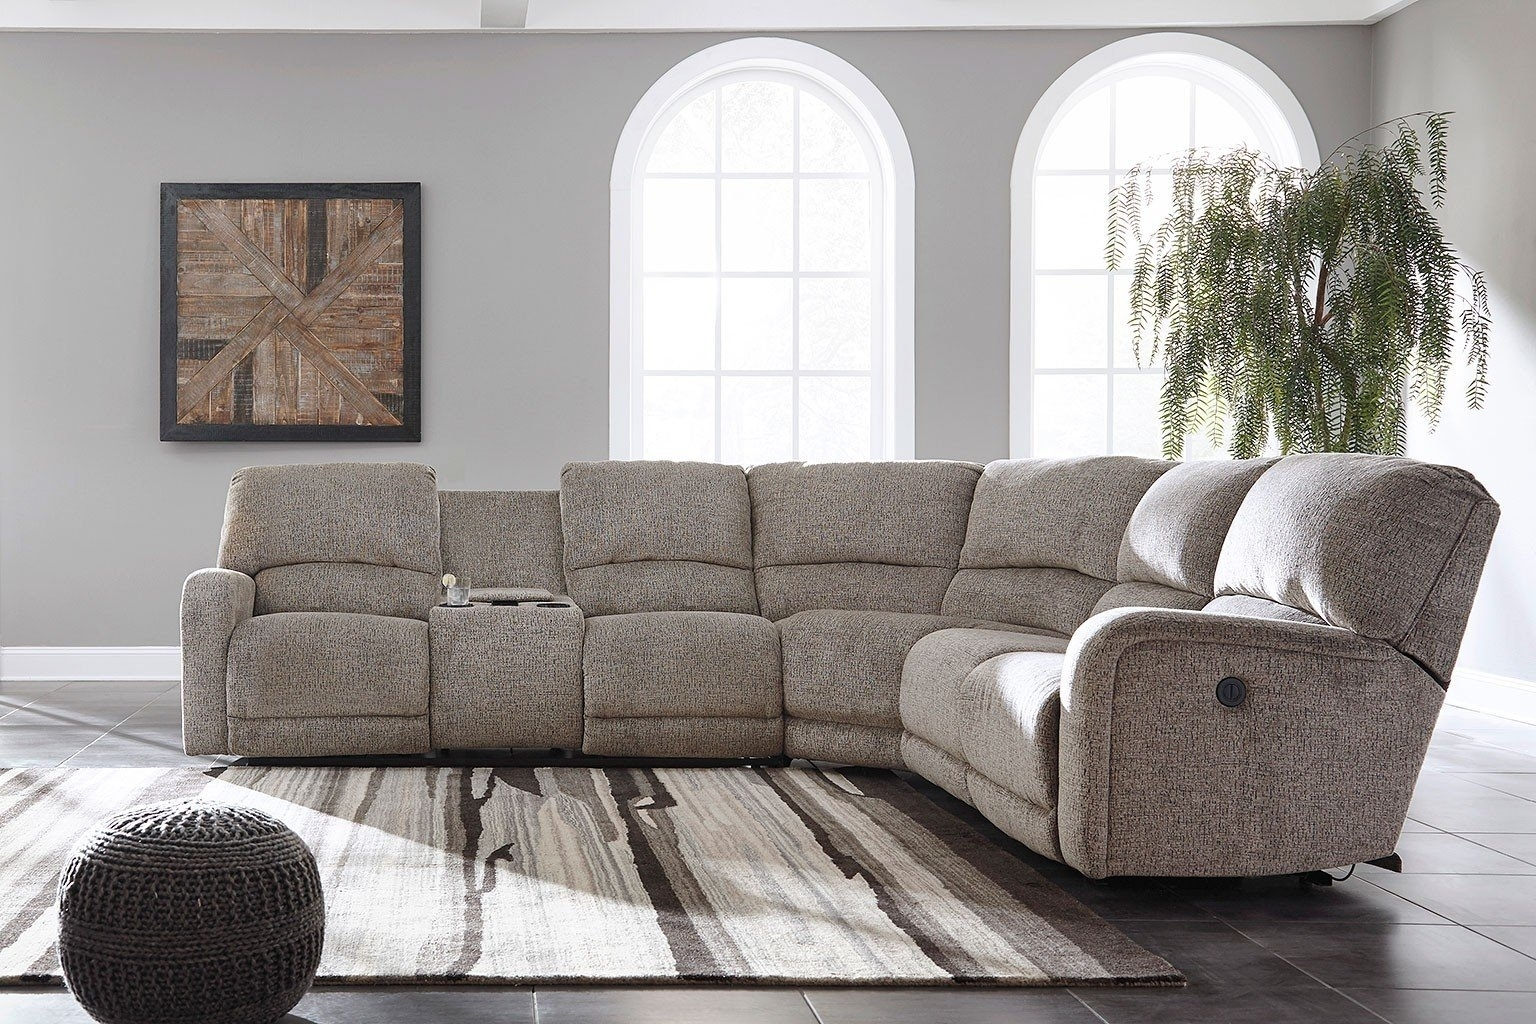 Sectional Loveseat - Tidex for Declan 3 Piece Power Reclining Sectionals With Right Facing Console Loveseat (Image 26 of 30)